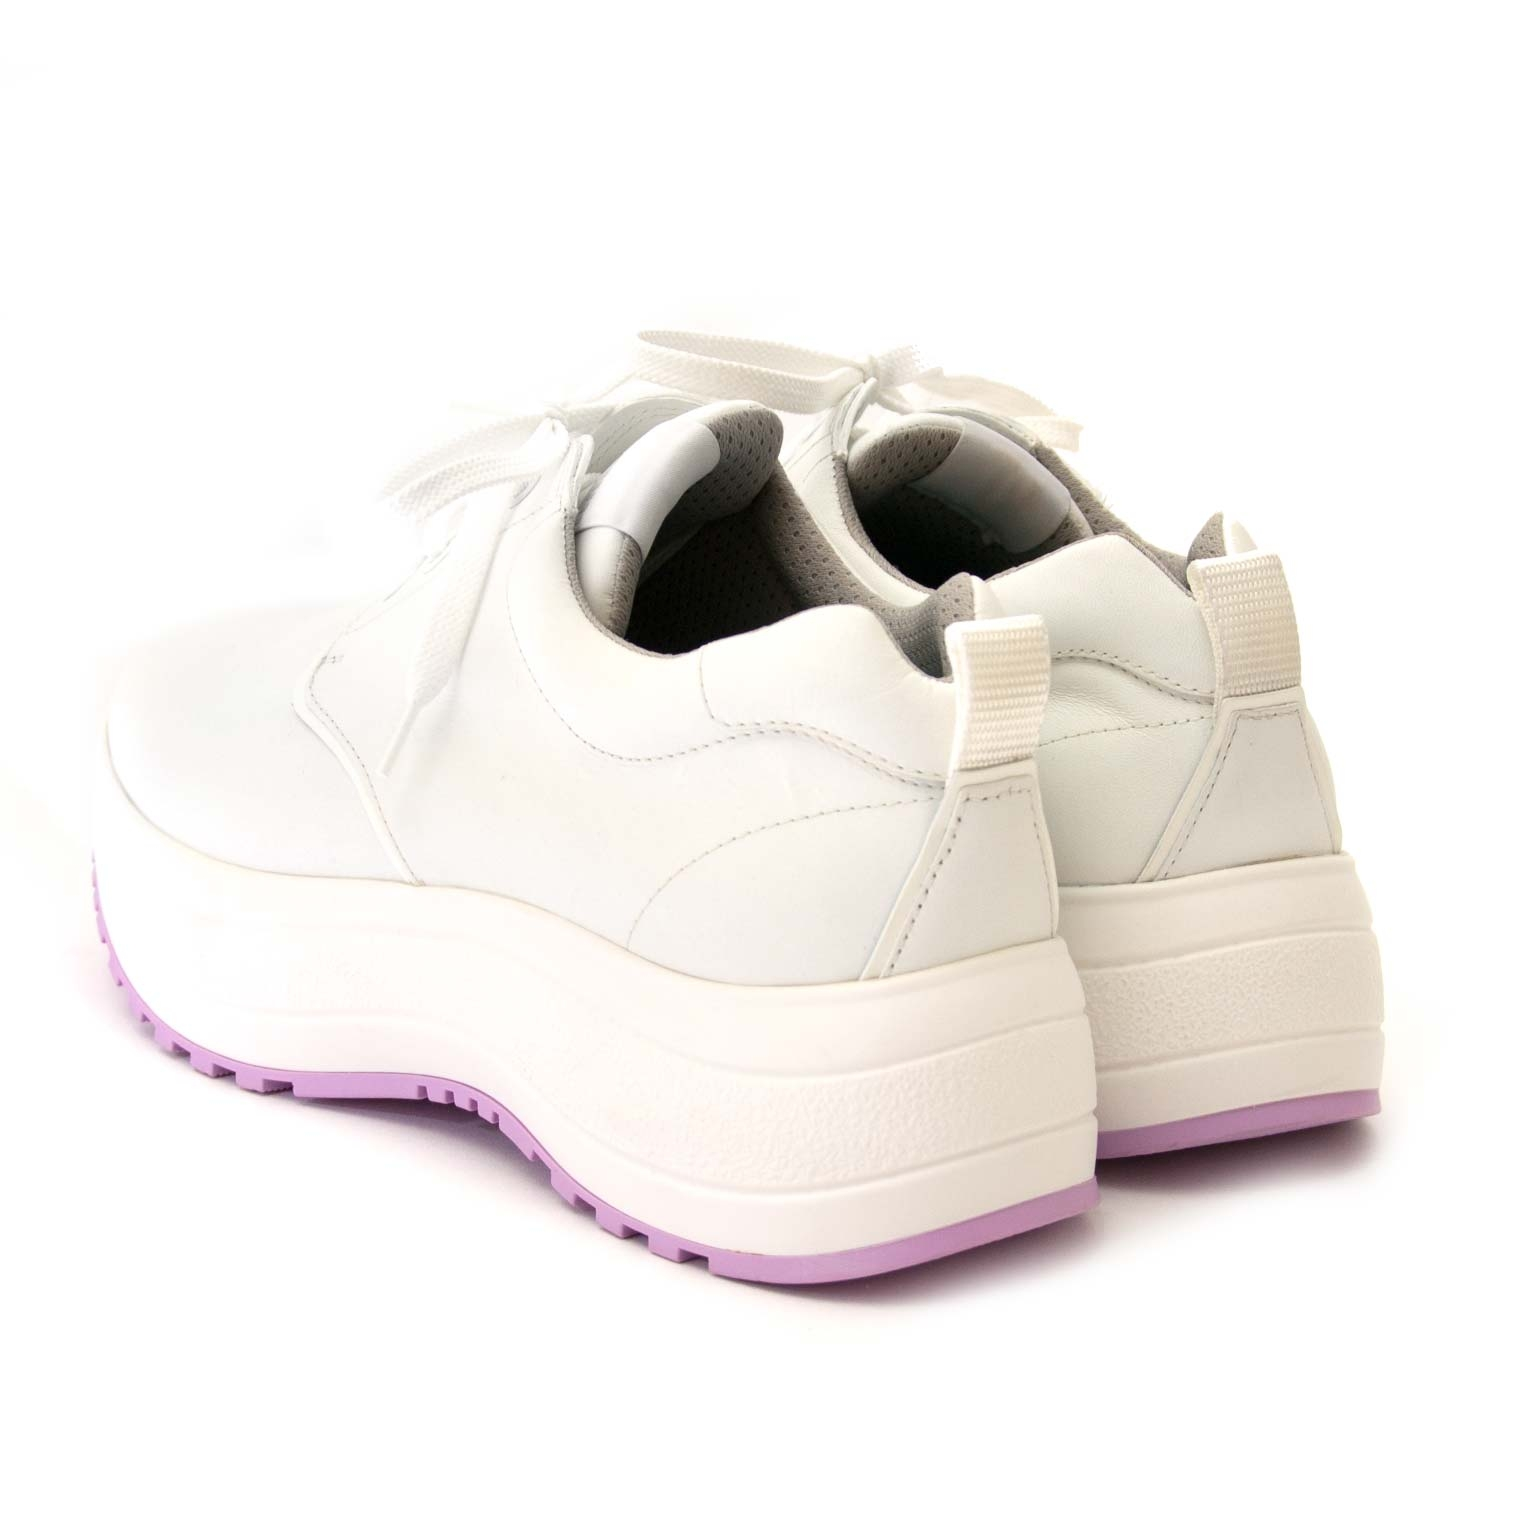 céline white delivery sneakers now for sale at labellov vintage fashion webshop belgium